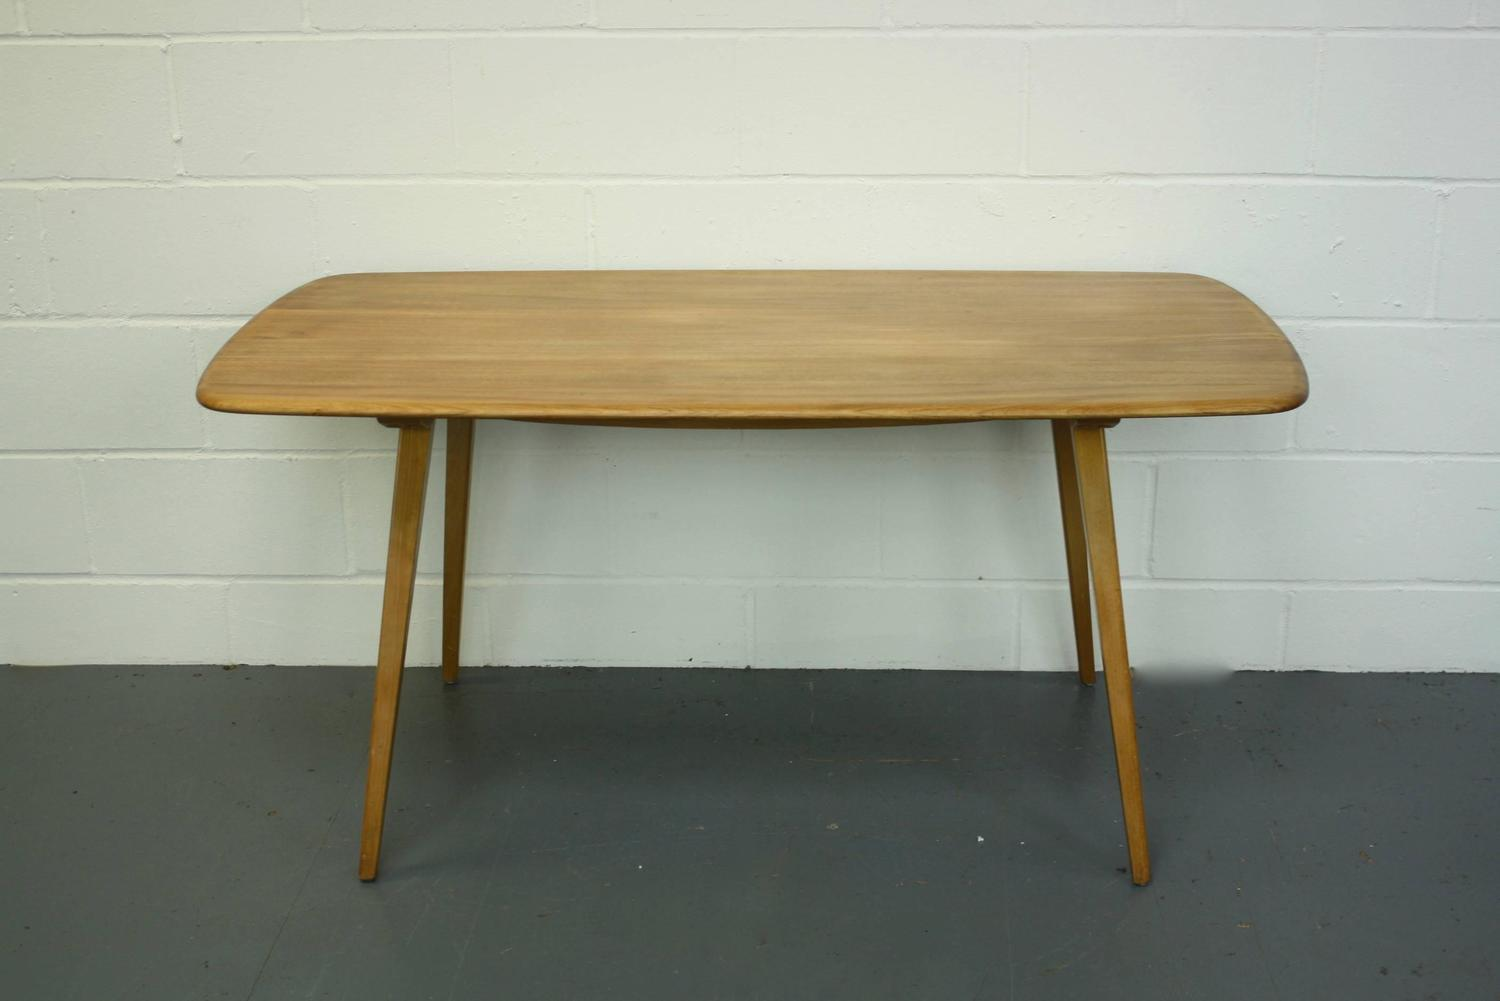 Midcentury Ercol quotPlankquot Elm and Beech Dining Table For  : IMG4131z from www.1stdibs.com size 1500 x 1001 jpeg 63kB